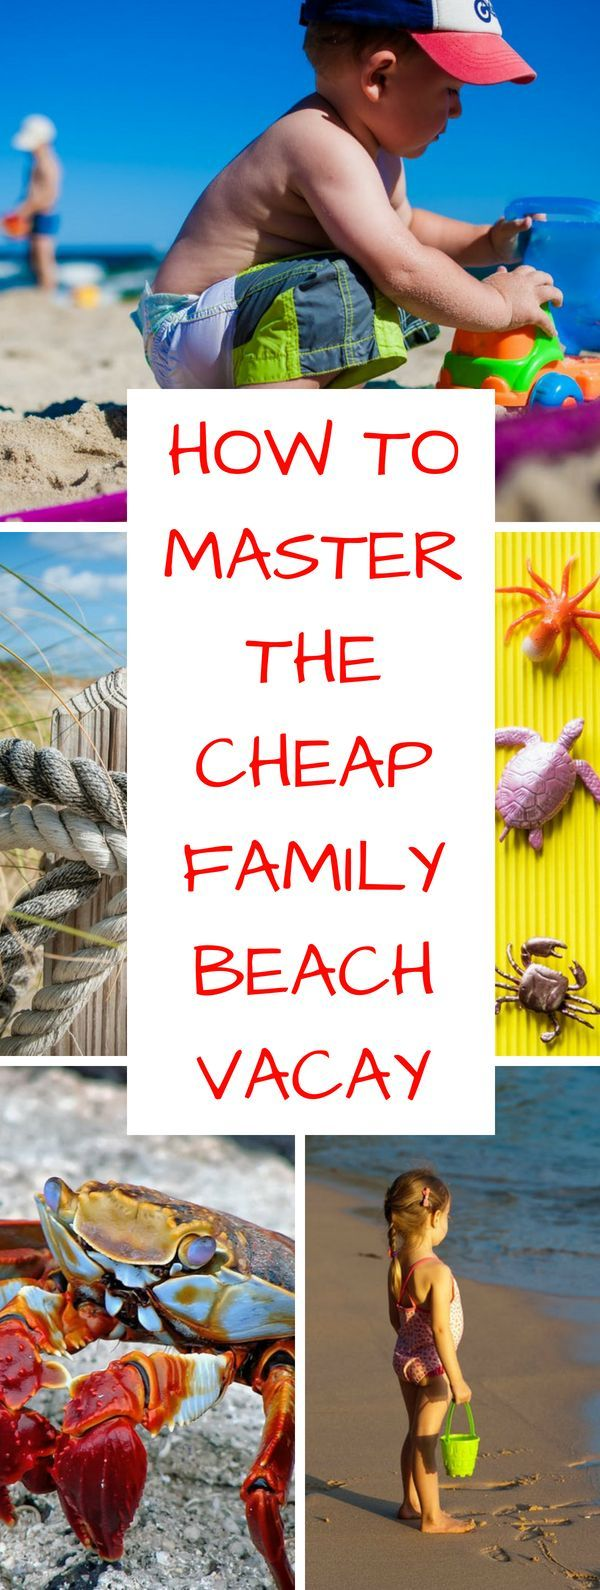 Mastering The Cheap Family Beach Vacation Is Totally